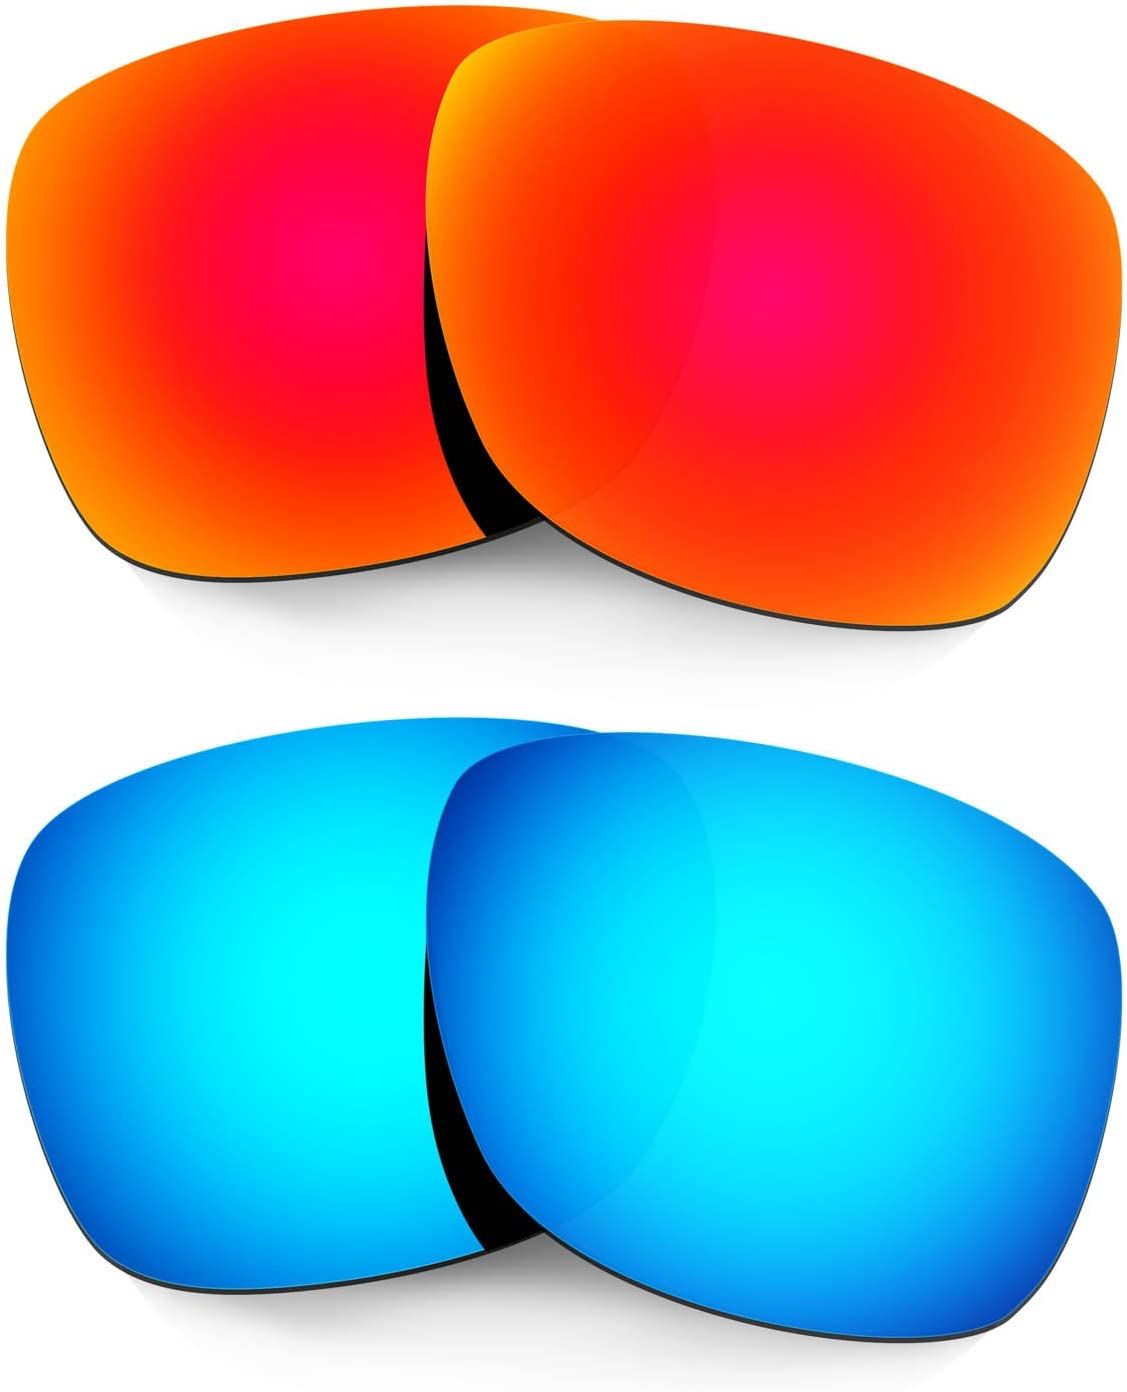 HKUCO Mens Replacement Lenses for Oakley Catalyst Sunglasses Red/Blue